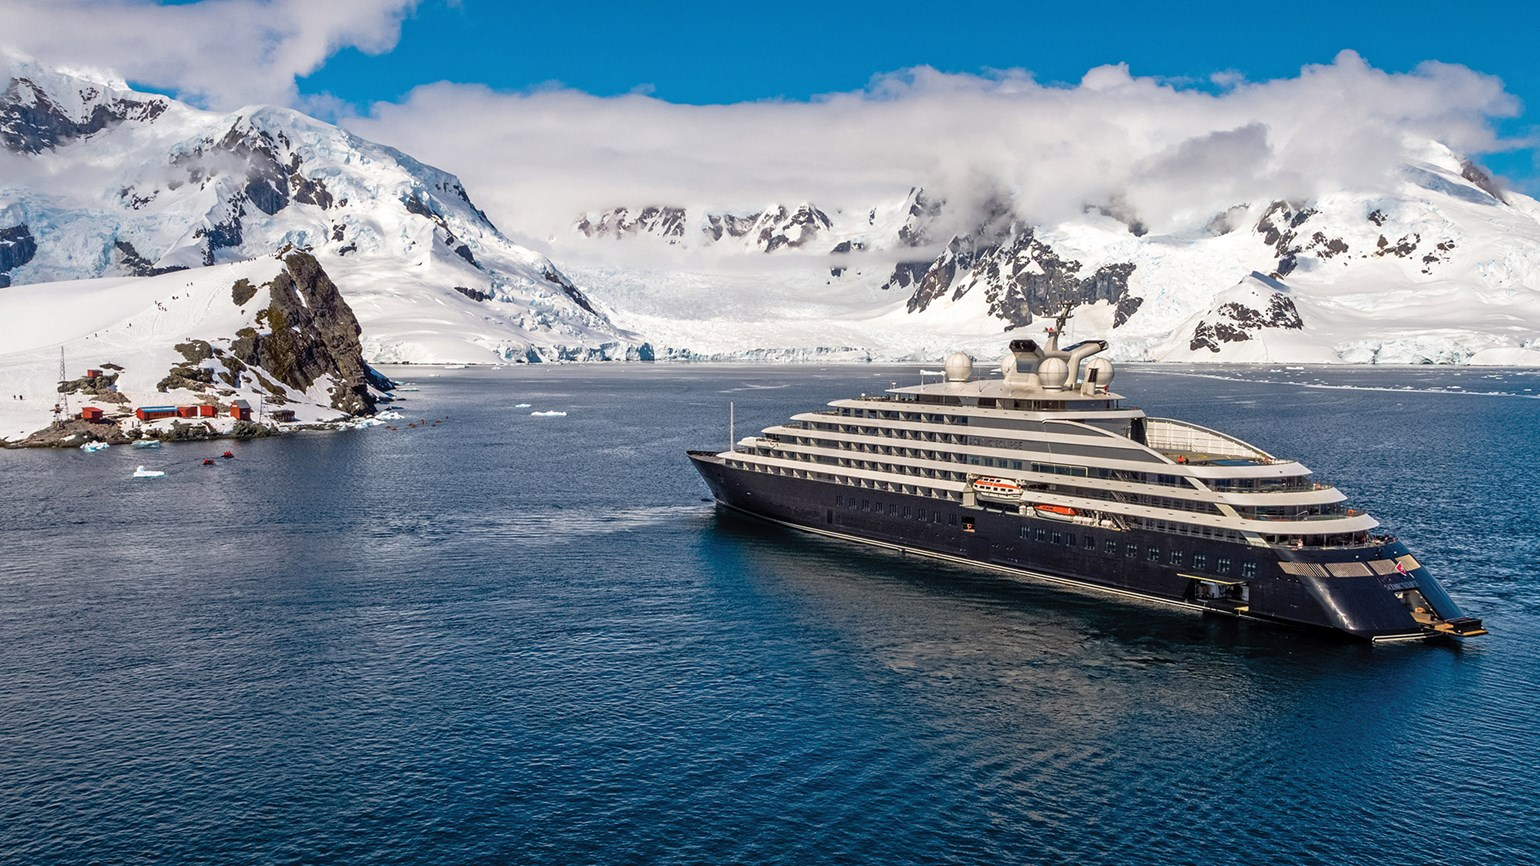 Expedition lines plan Antarctic itineraries around a rare eclipse